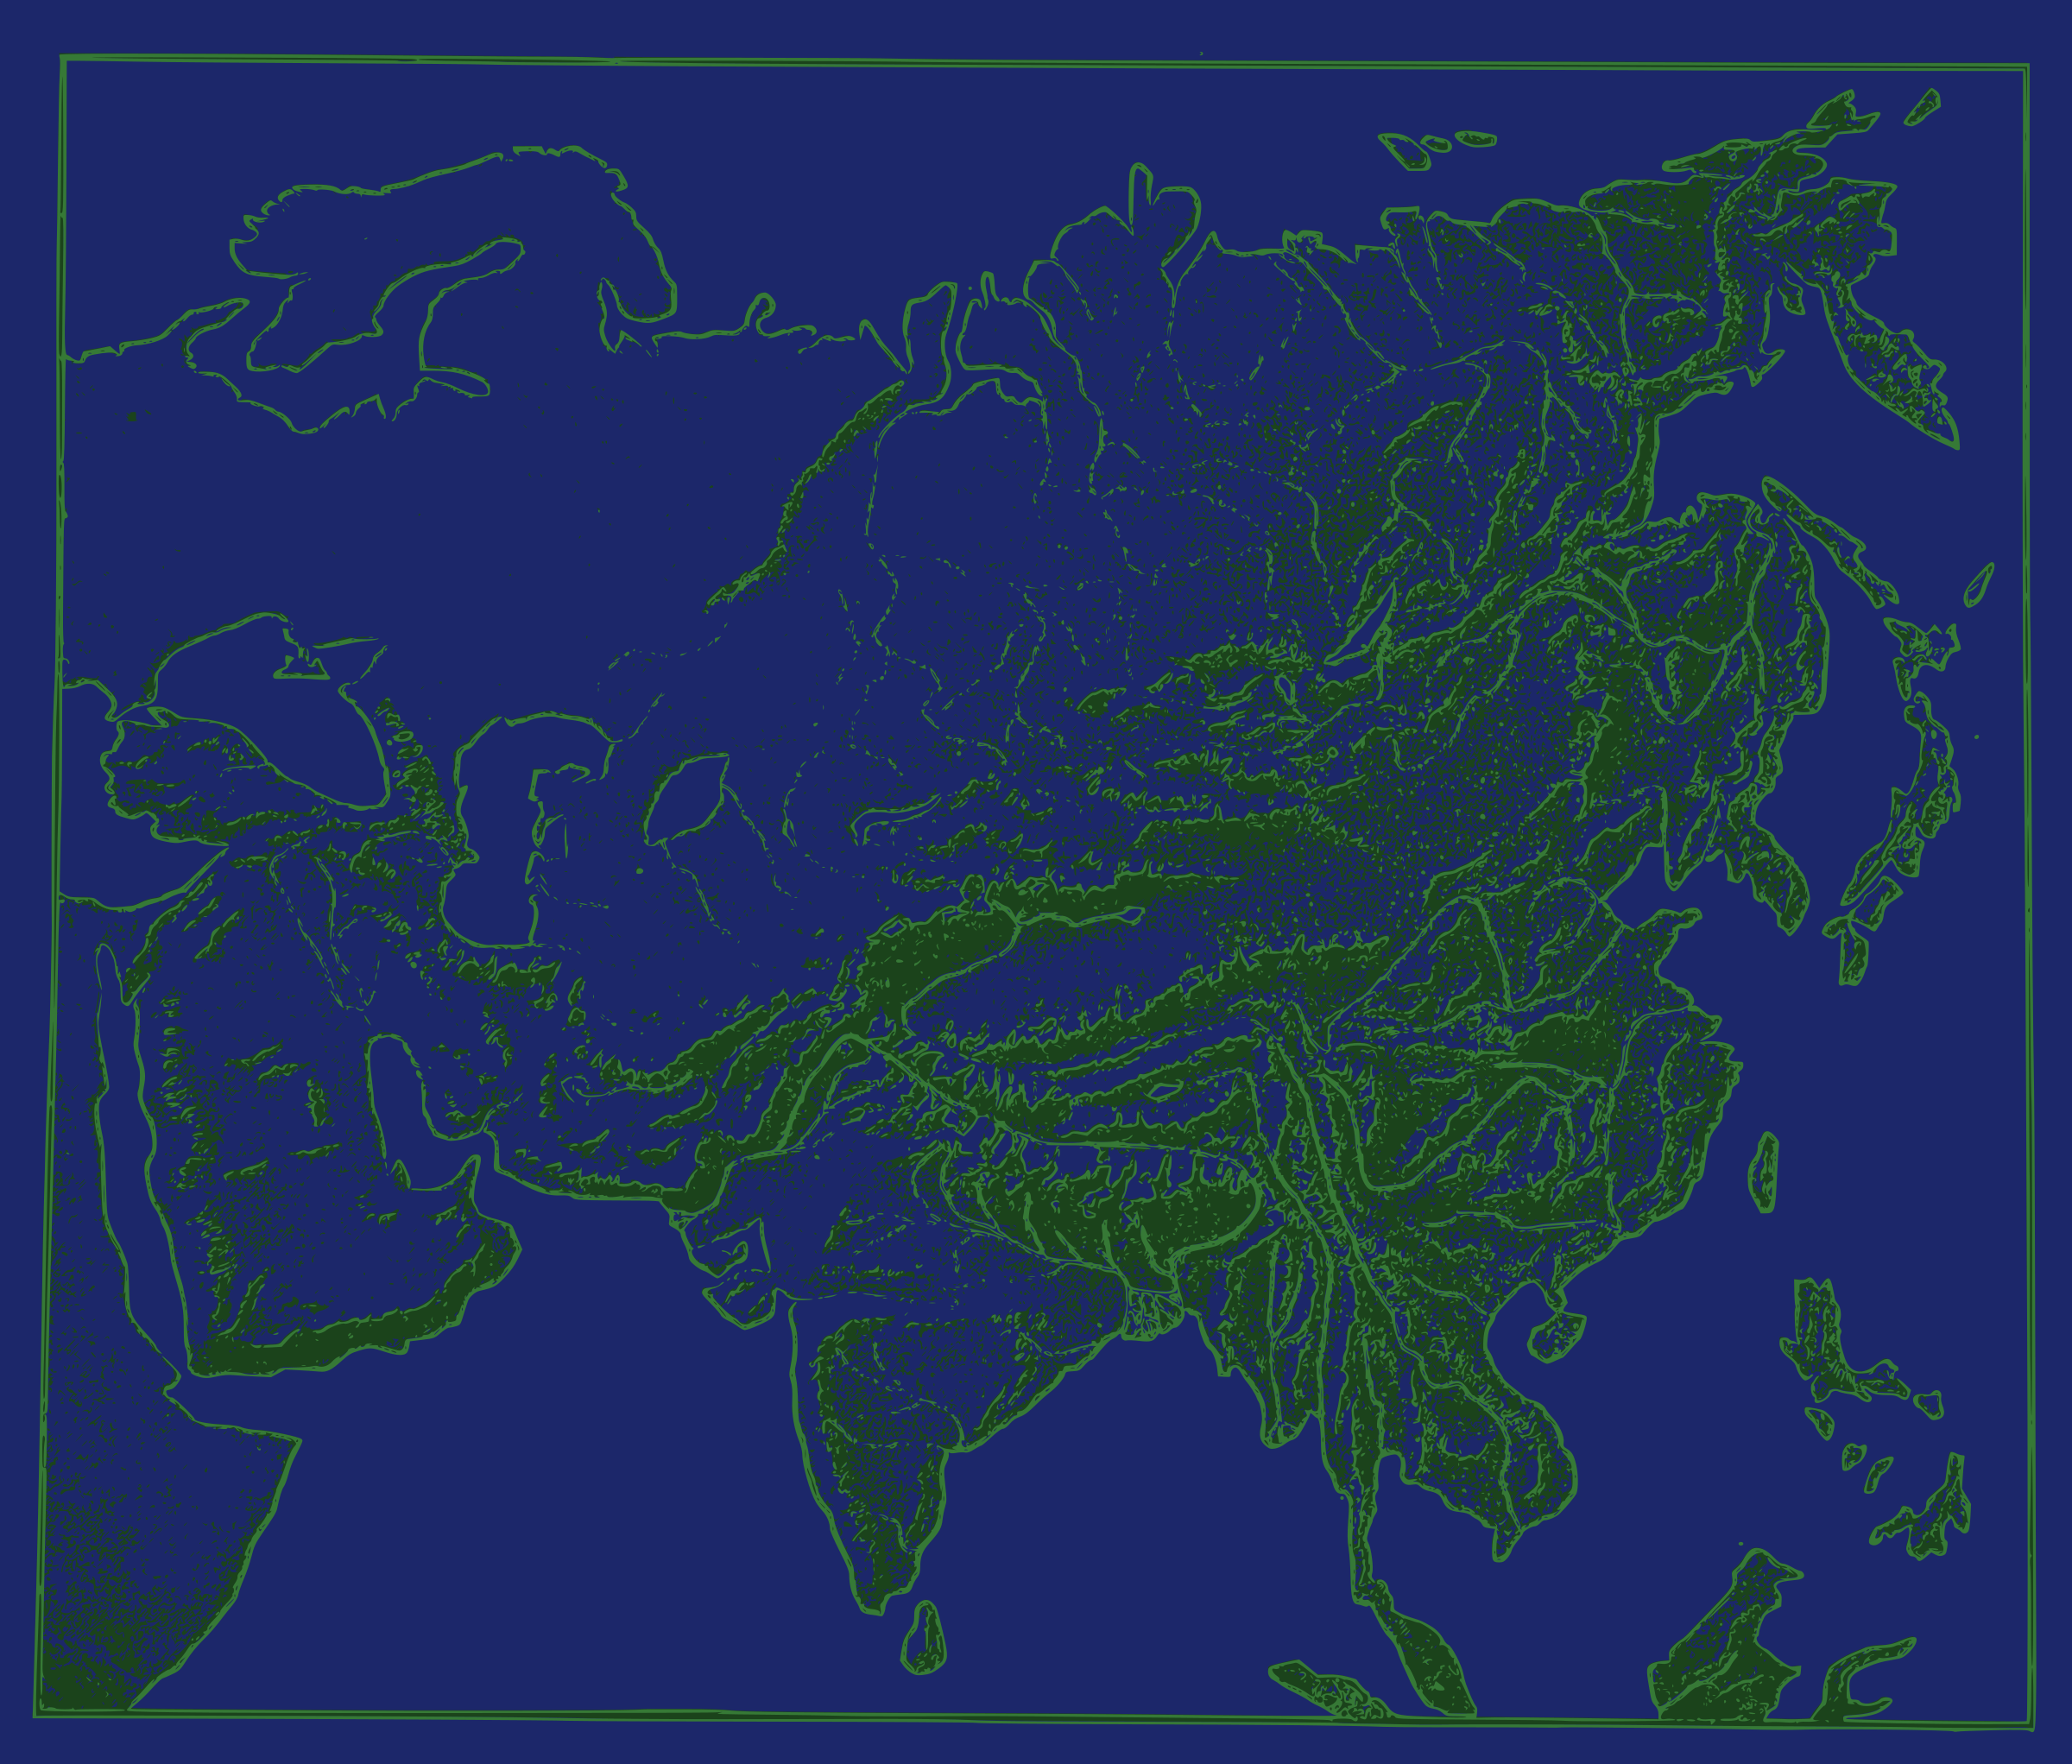 Map of Asia by j4p4n